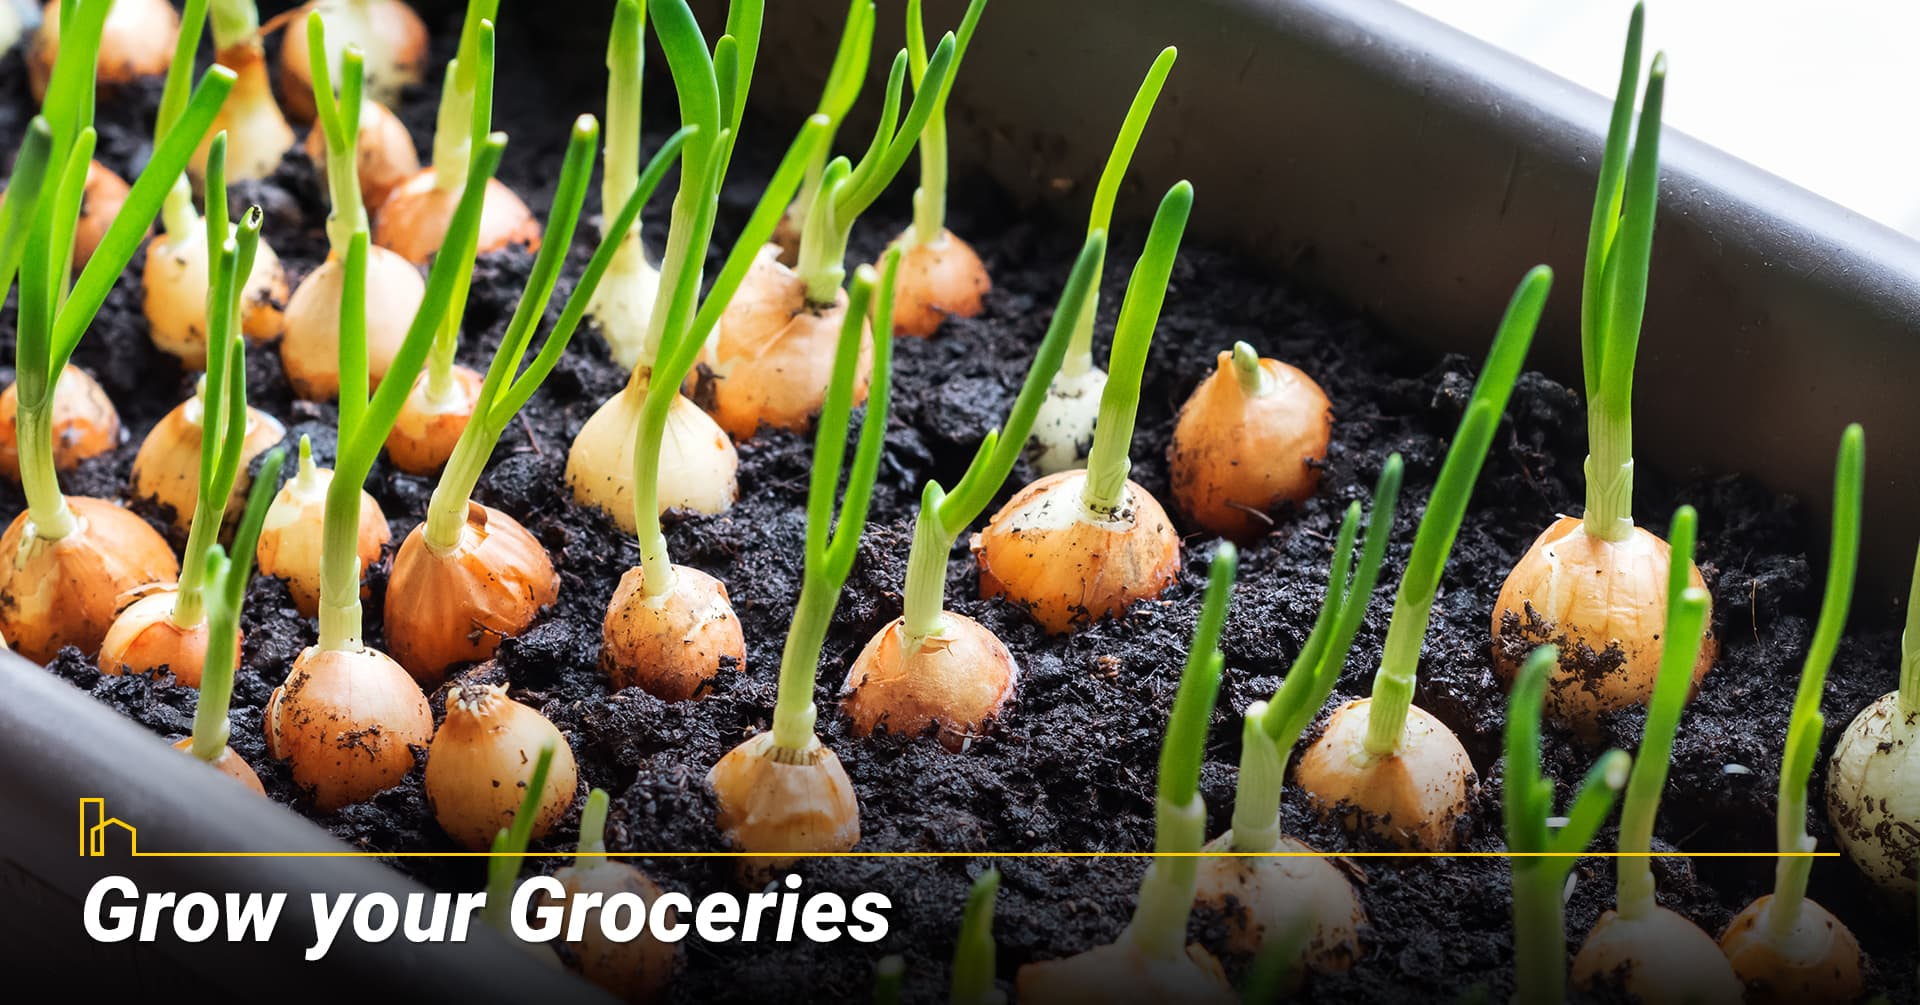 Grow your Groceries, grow your own herbs